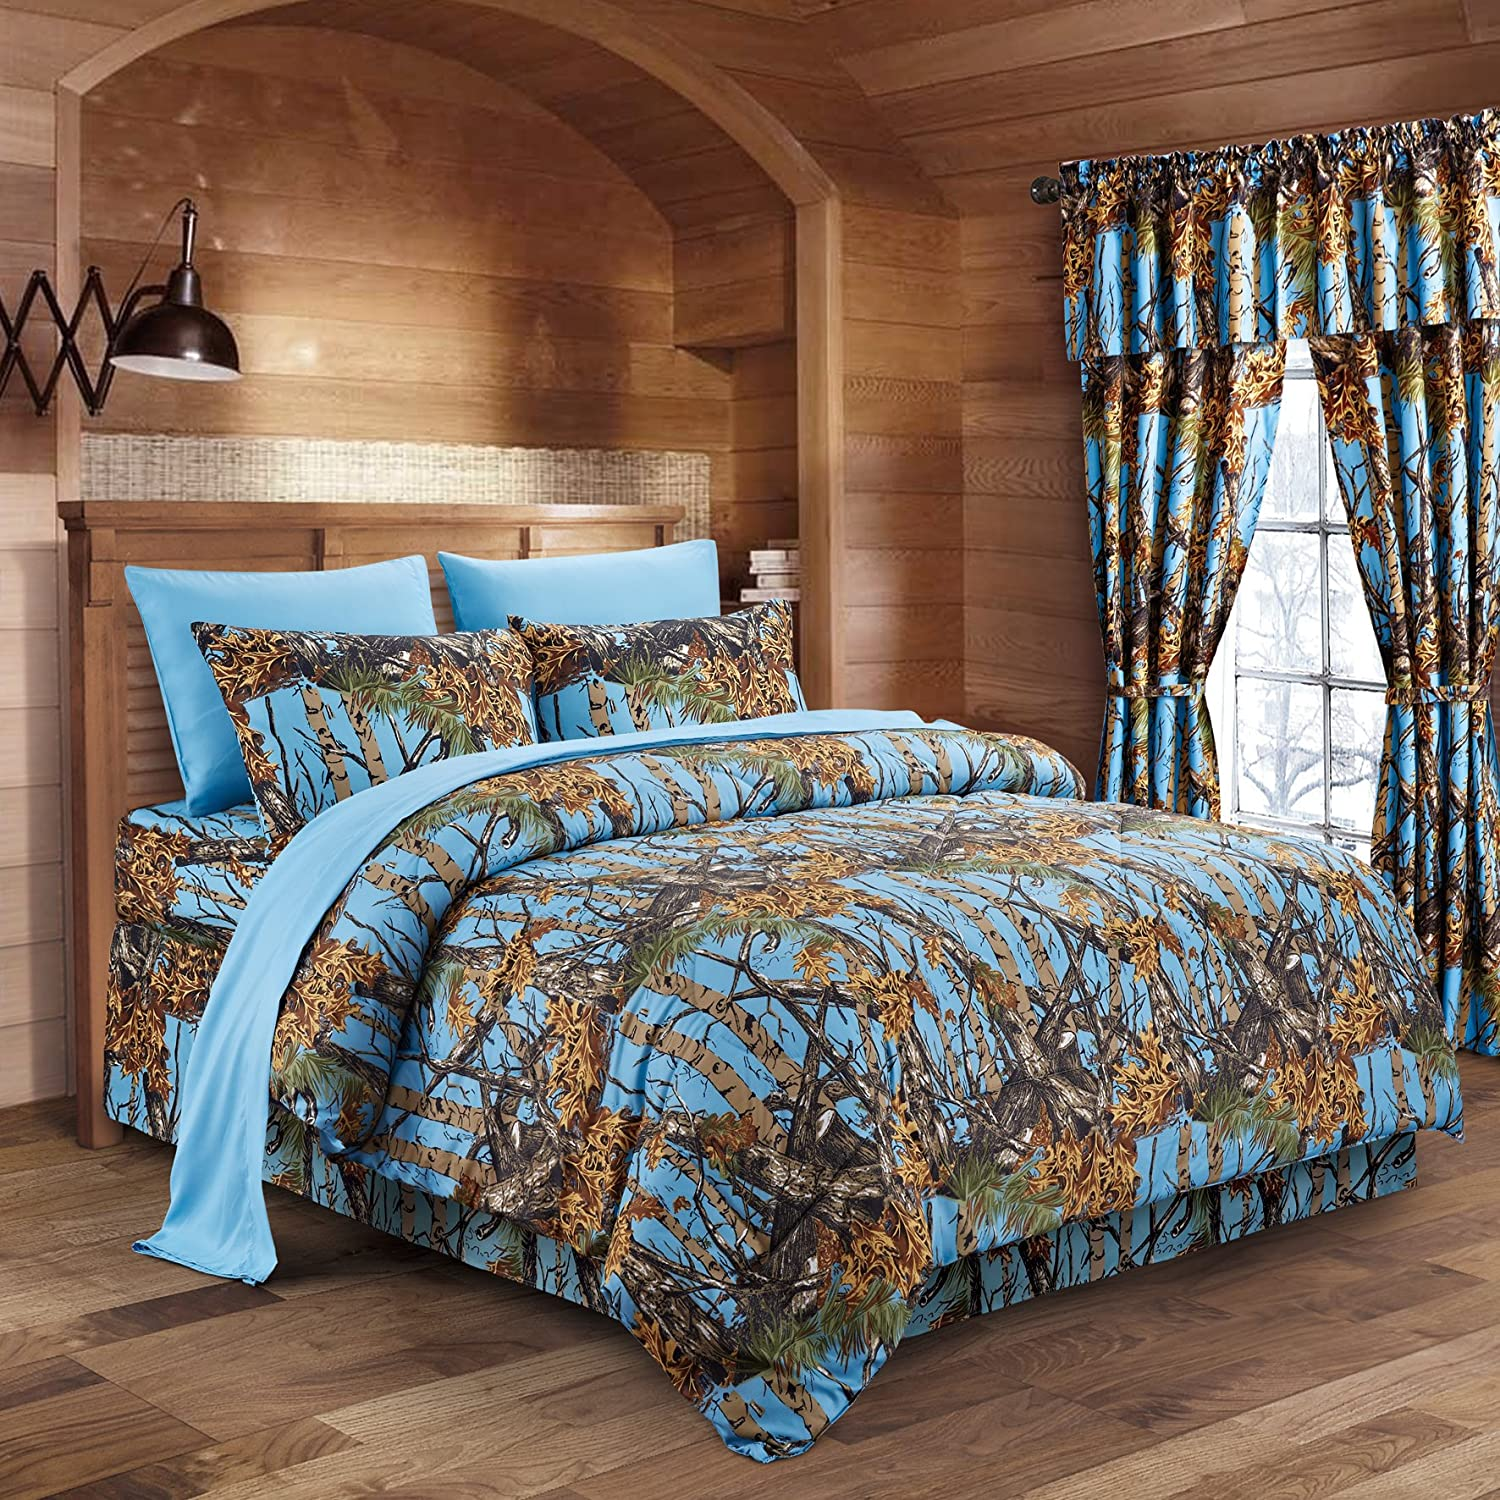 The Woods Powder Blue Camouflage Queen 8pc Premium Luxury Comforter